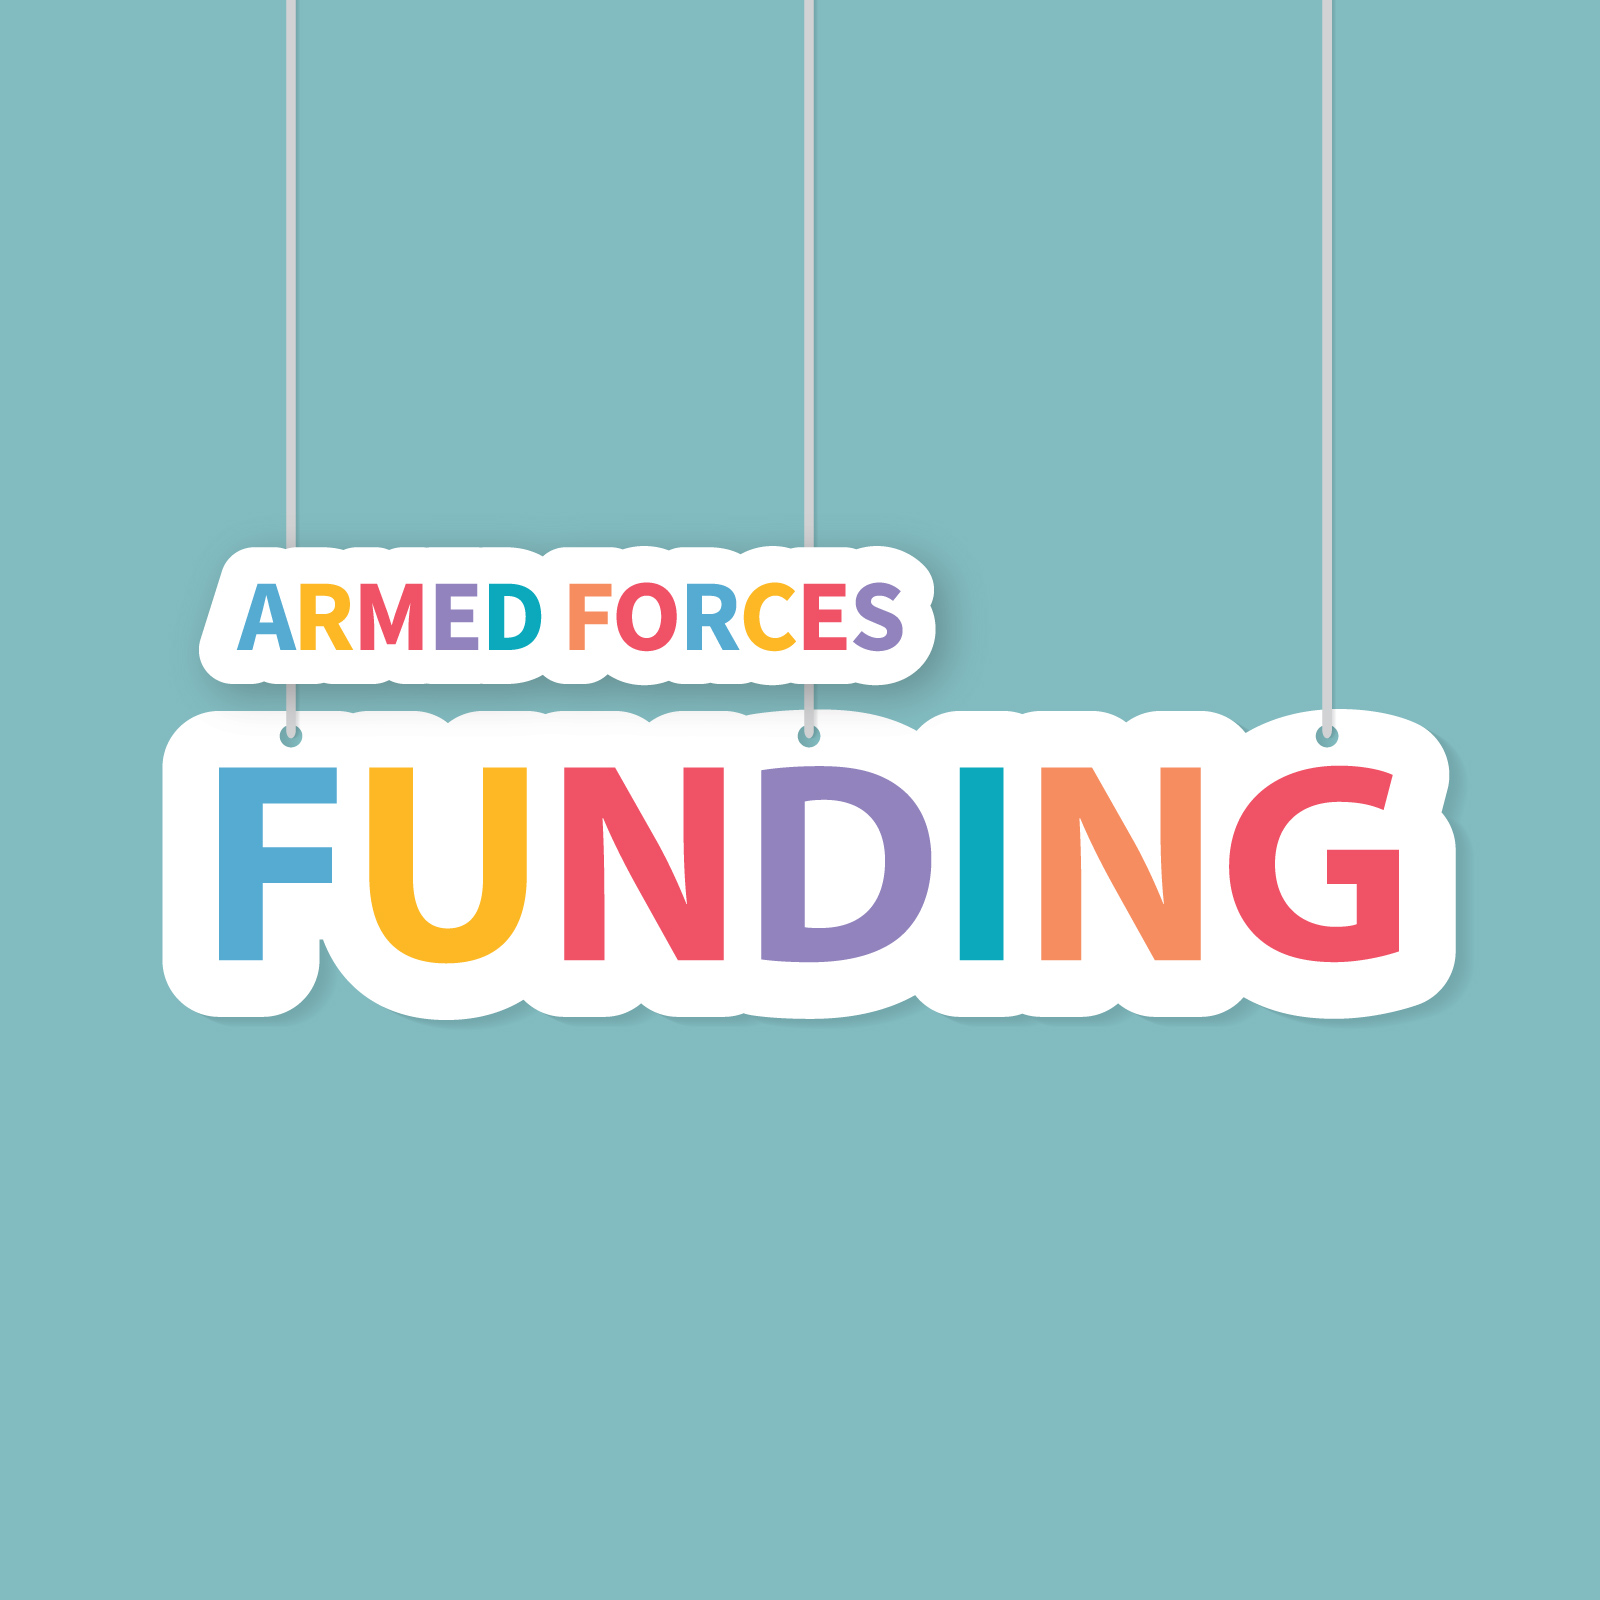 Armed Forces Funding illustration